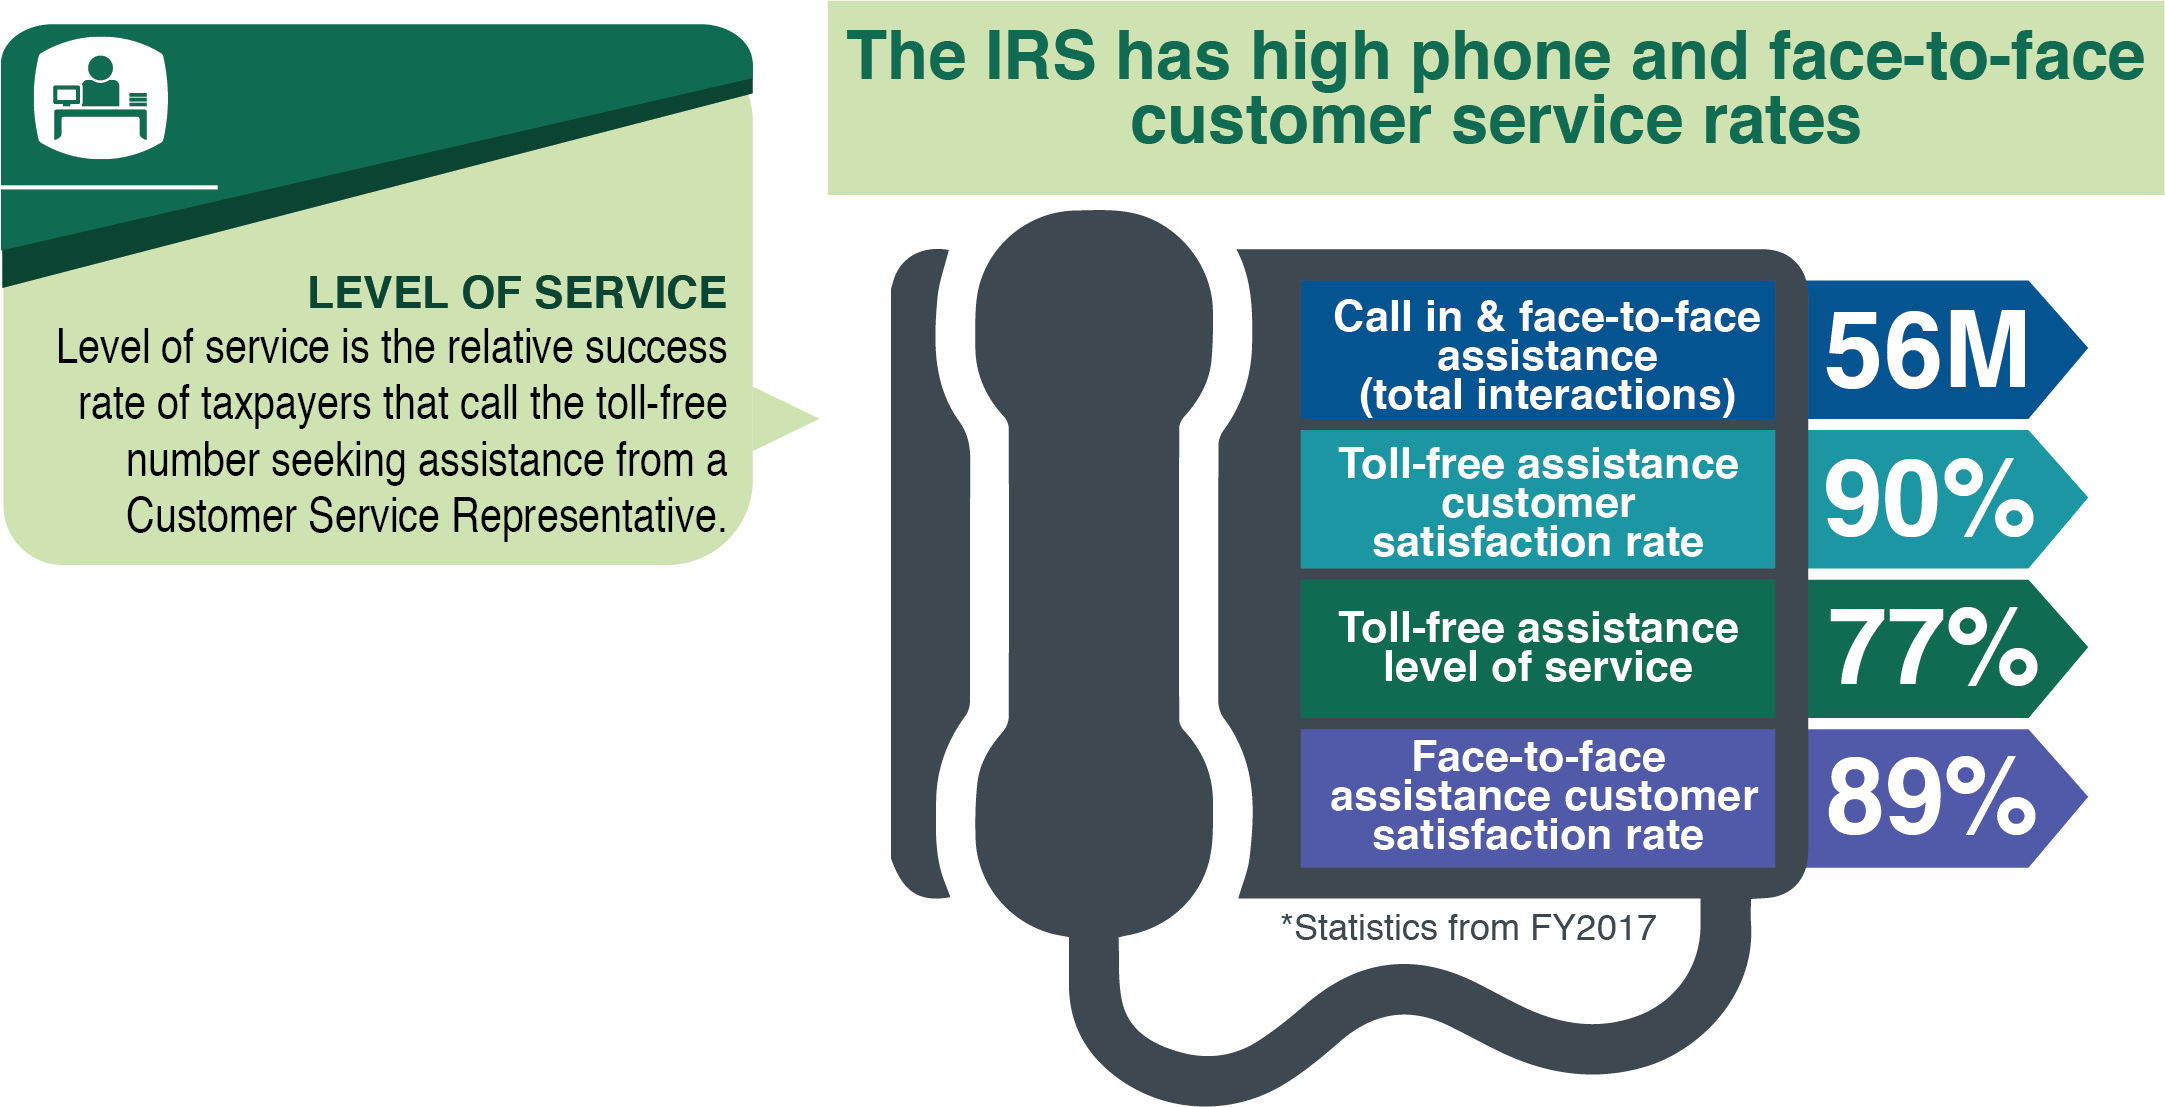 Traditional IRS Service Channels. The IRS has high phone and face-to-face customer service rates. In fiscal year 2017, the IRS received 56 million call-in and face-to-face interactions, and found that 90% of customers were satisfied with their toll free assistance. Taxpayers also had a 77% level of service rate for toll-free assistance. Level of service is the relative success rate of taxpayers that call the toll-free number seeking assistance from a customer service representative. Finally, there was an 89